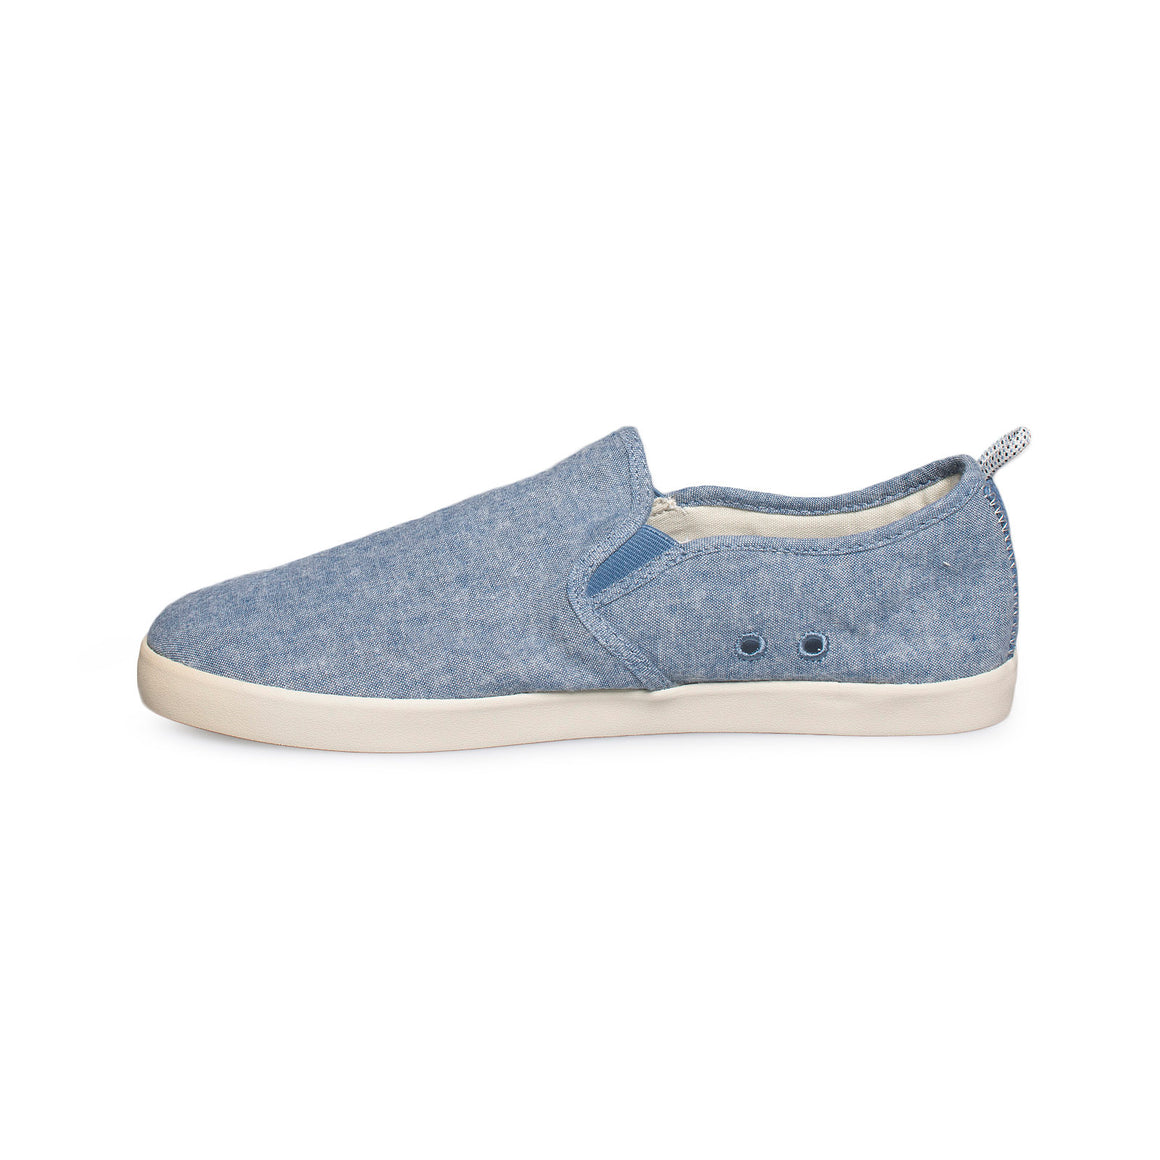 SANUK Range TX Blue Chambray Shoes - Men's